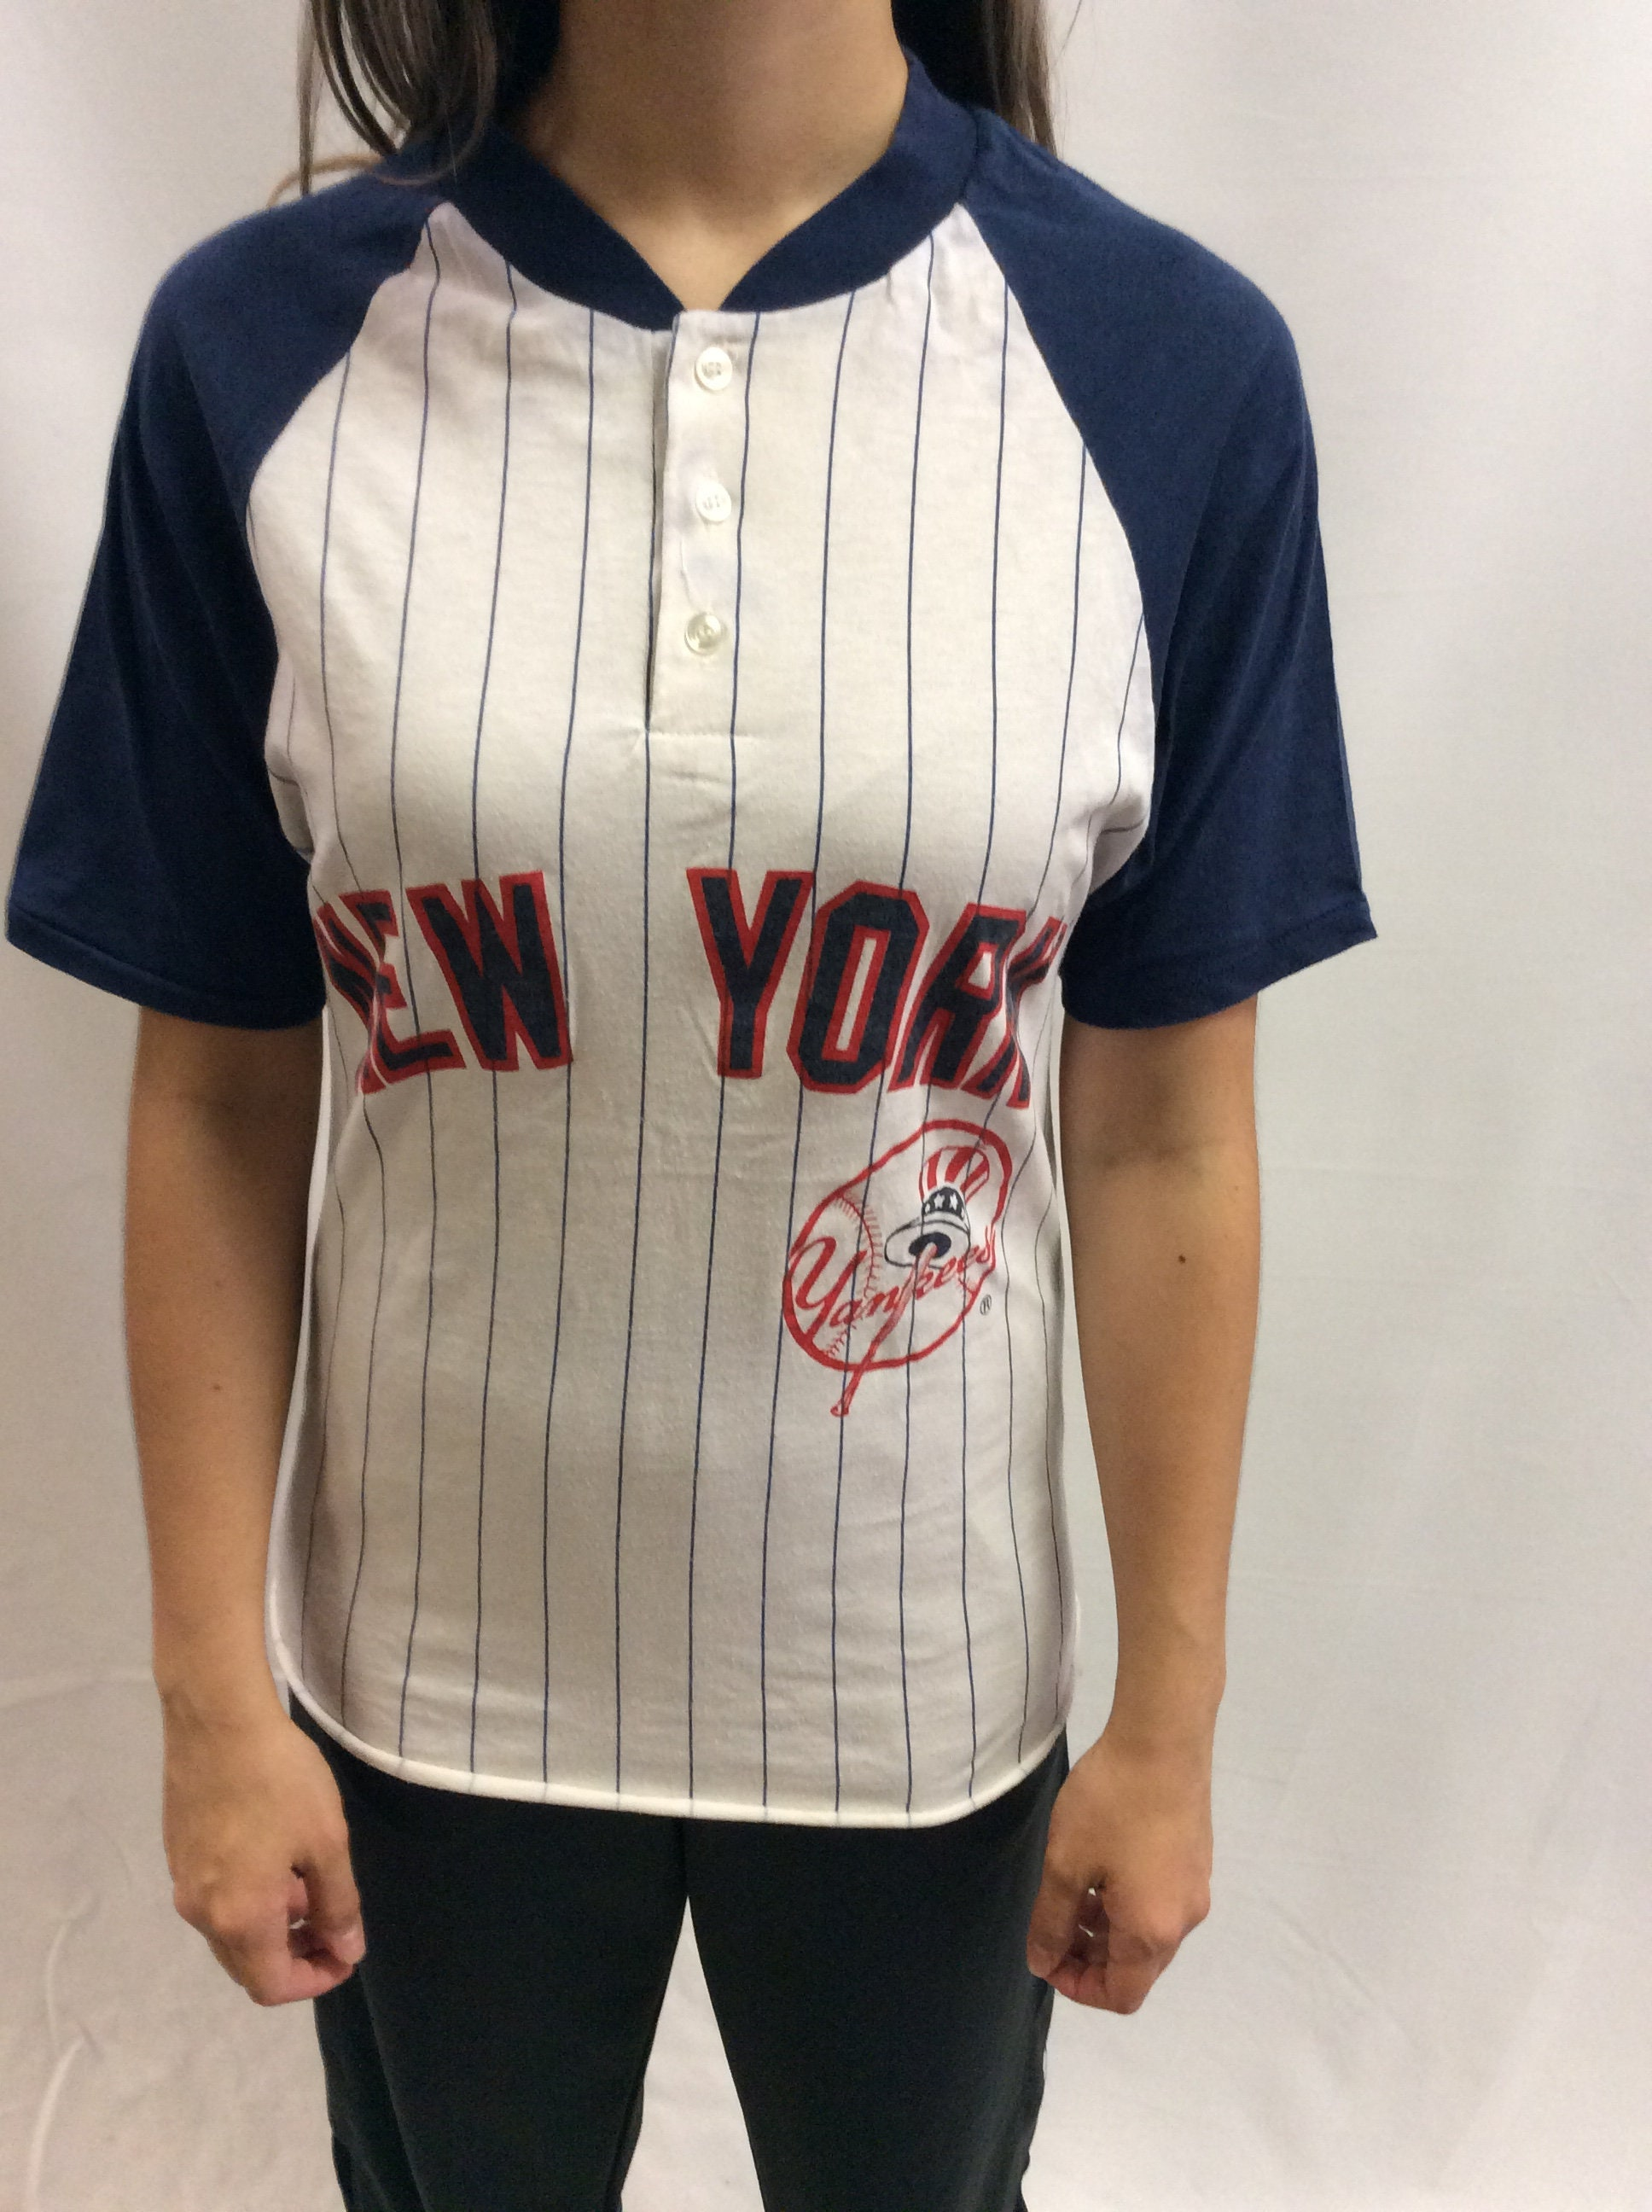 Vintage New York Yankees Pinstripe T Shirt Etsy